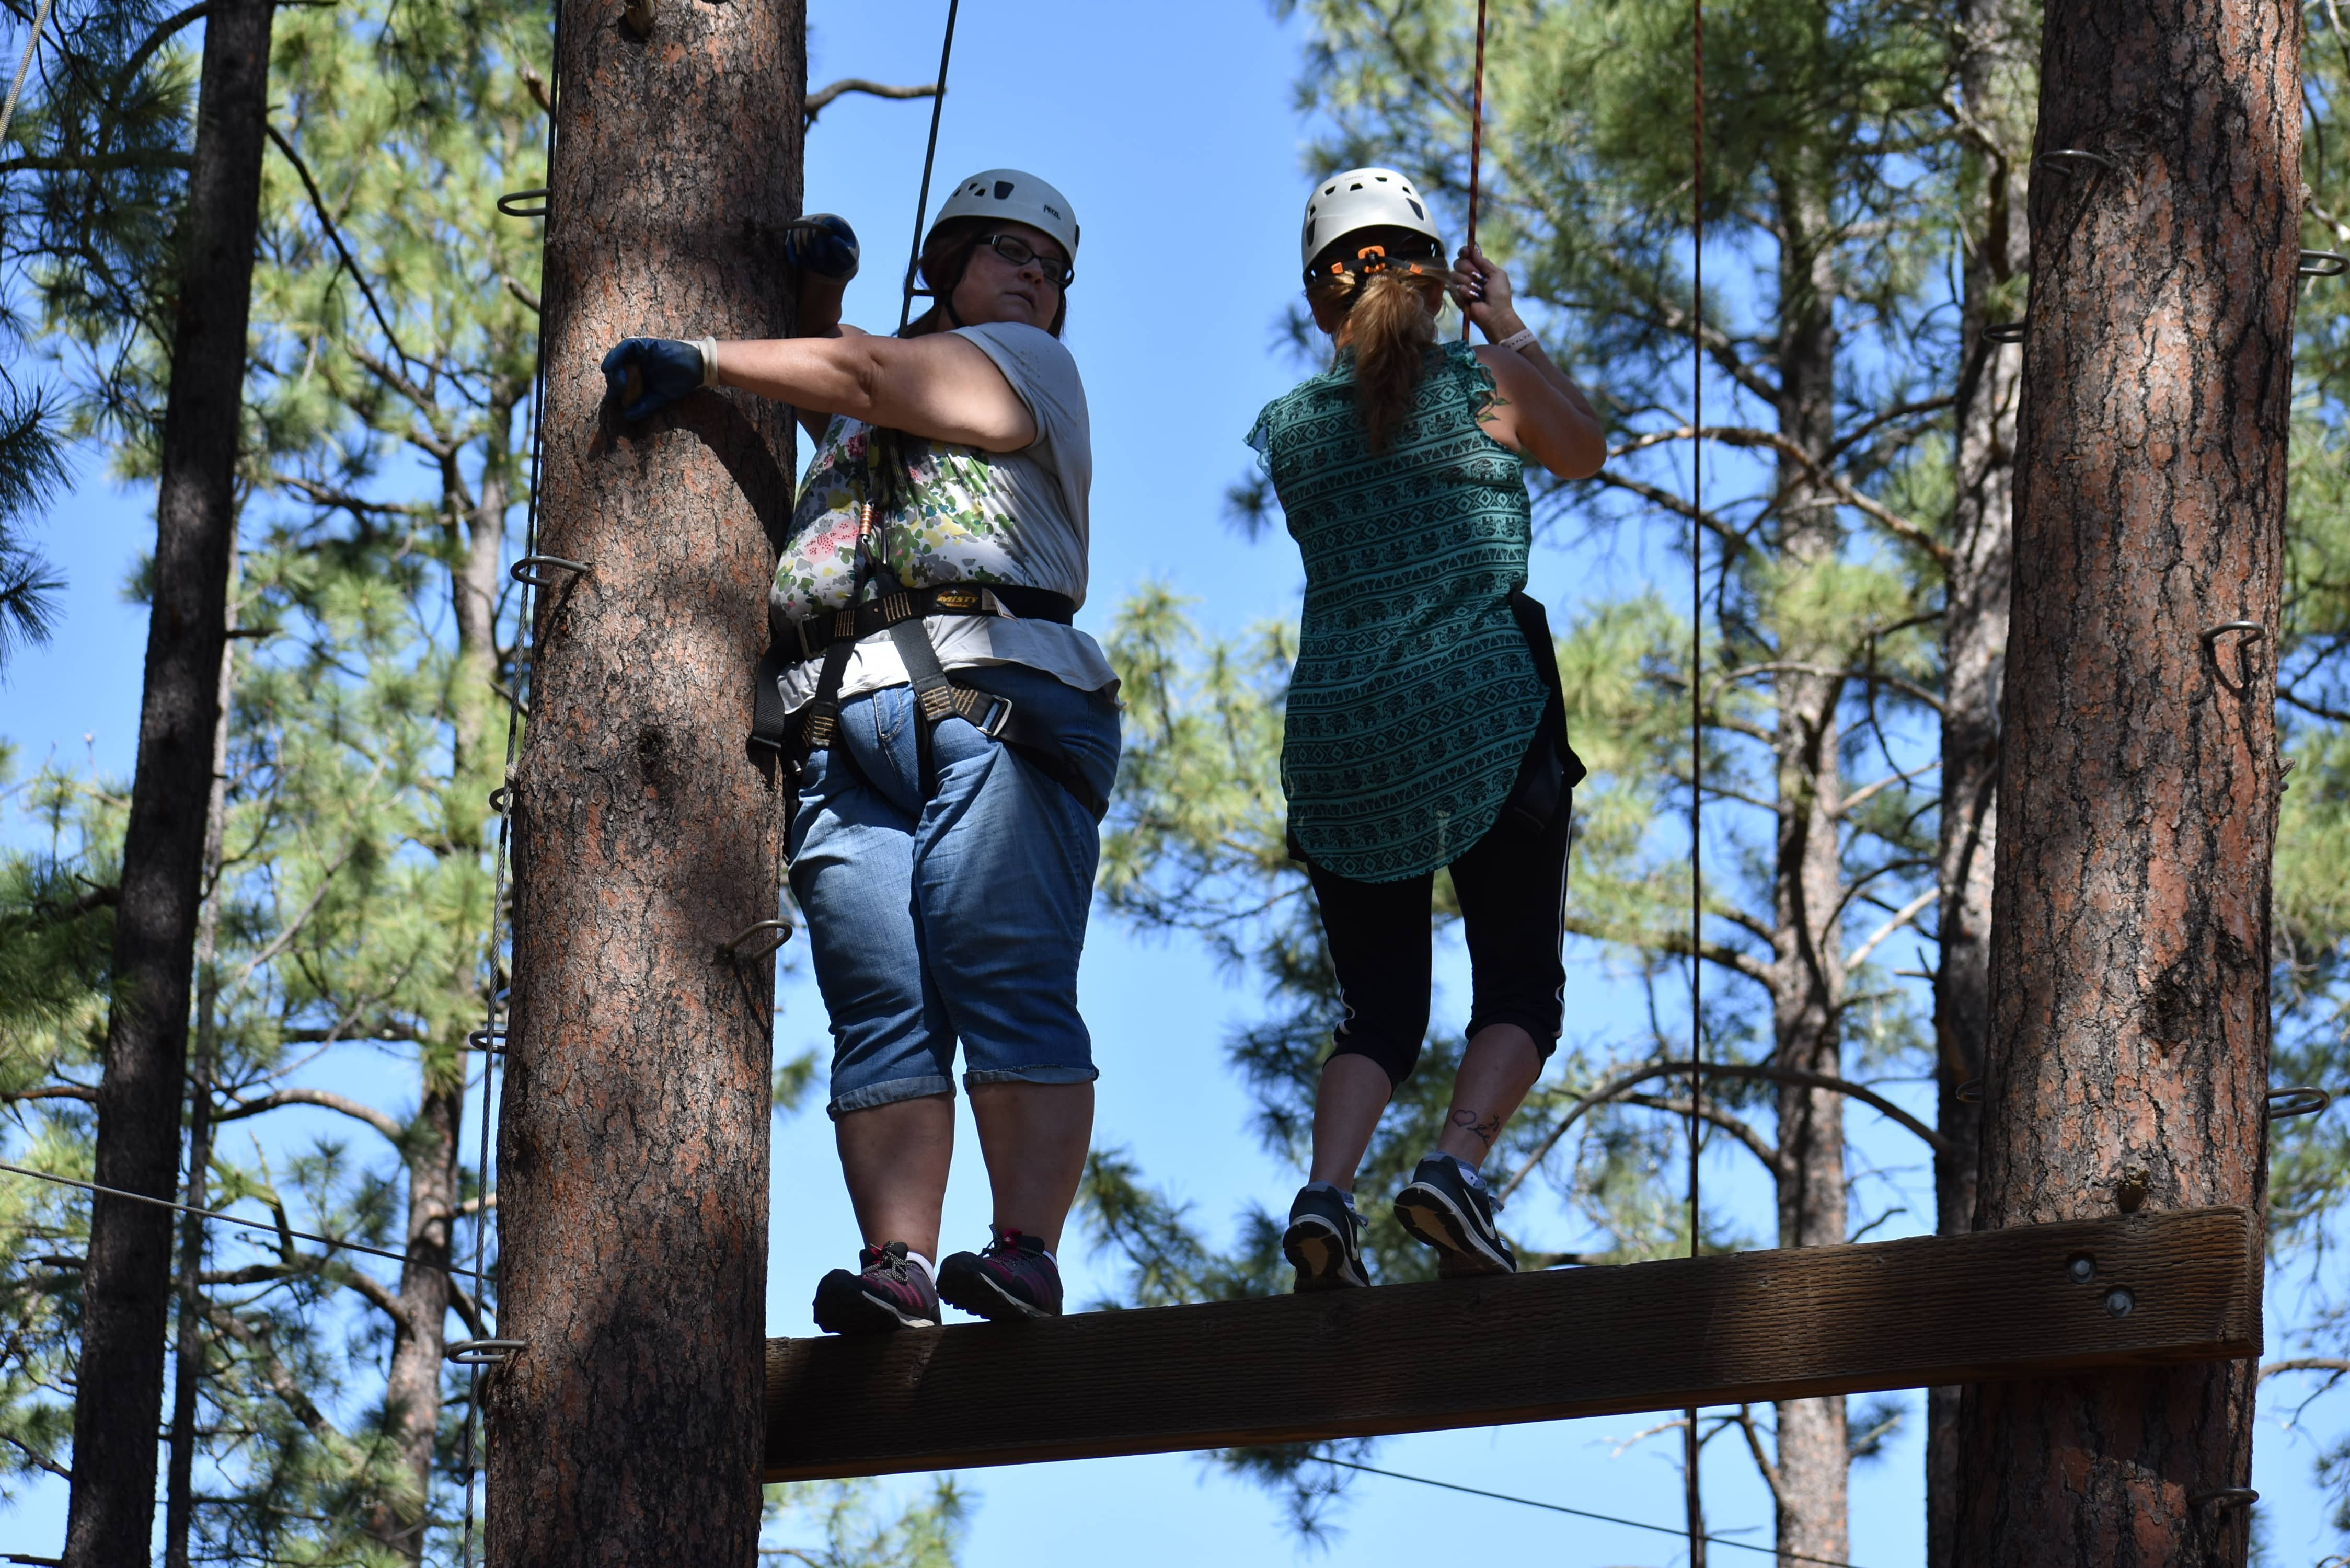 People on the high ropes course